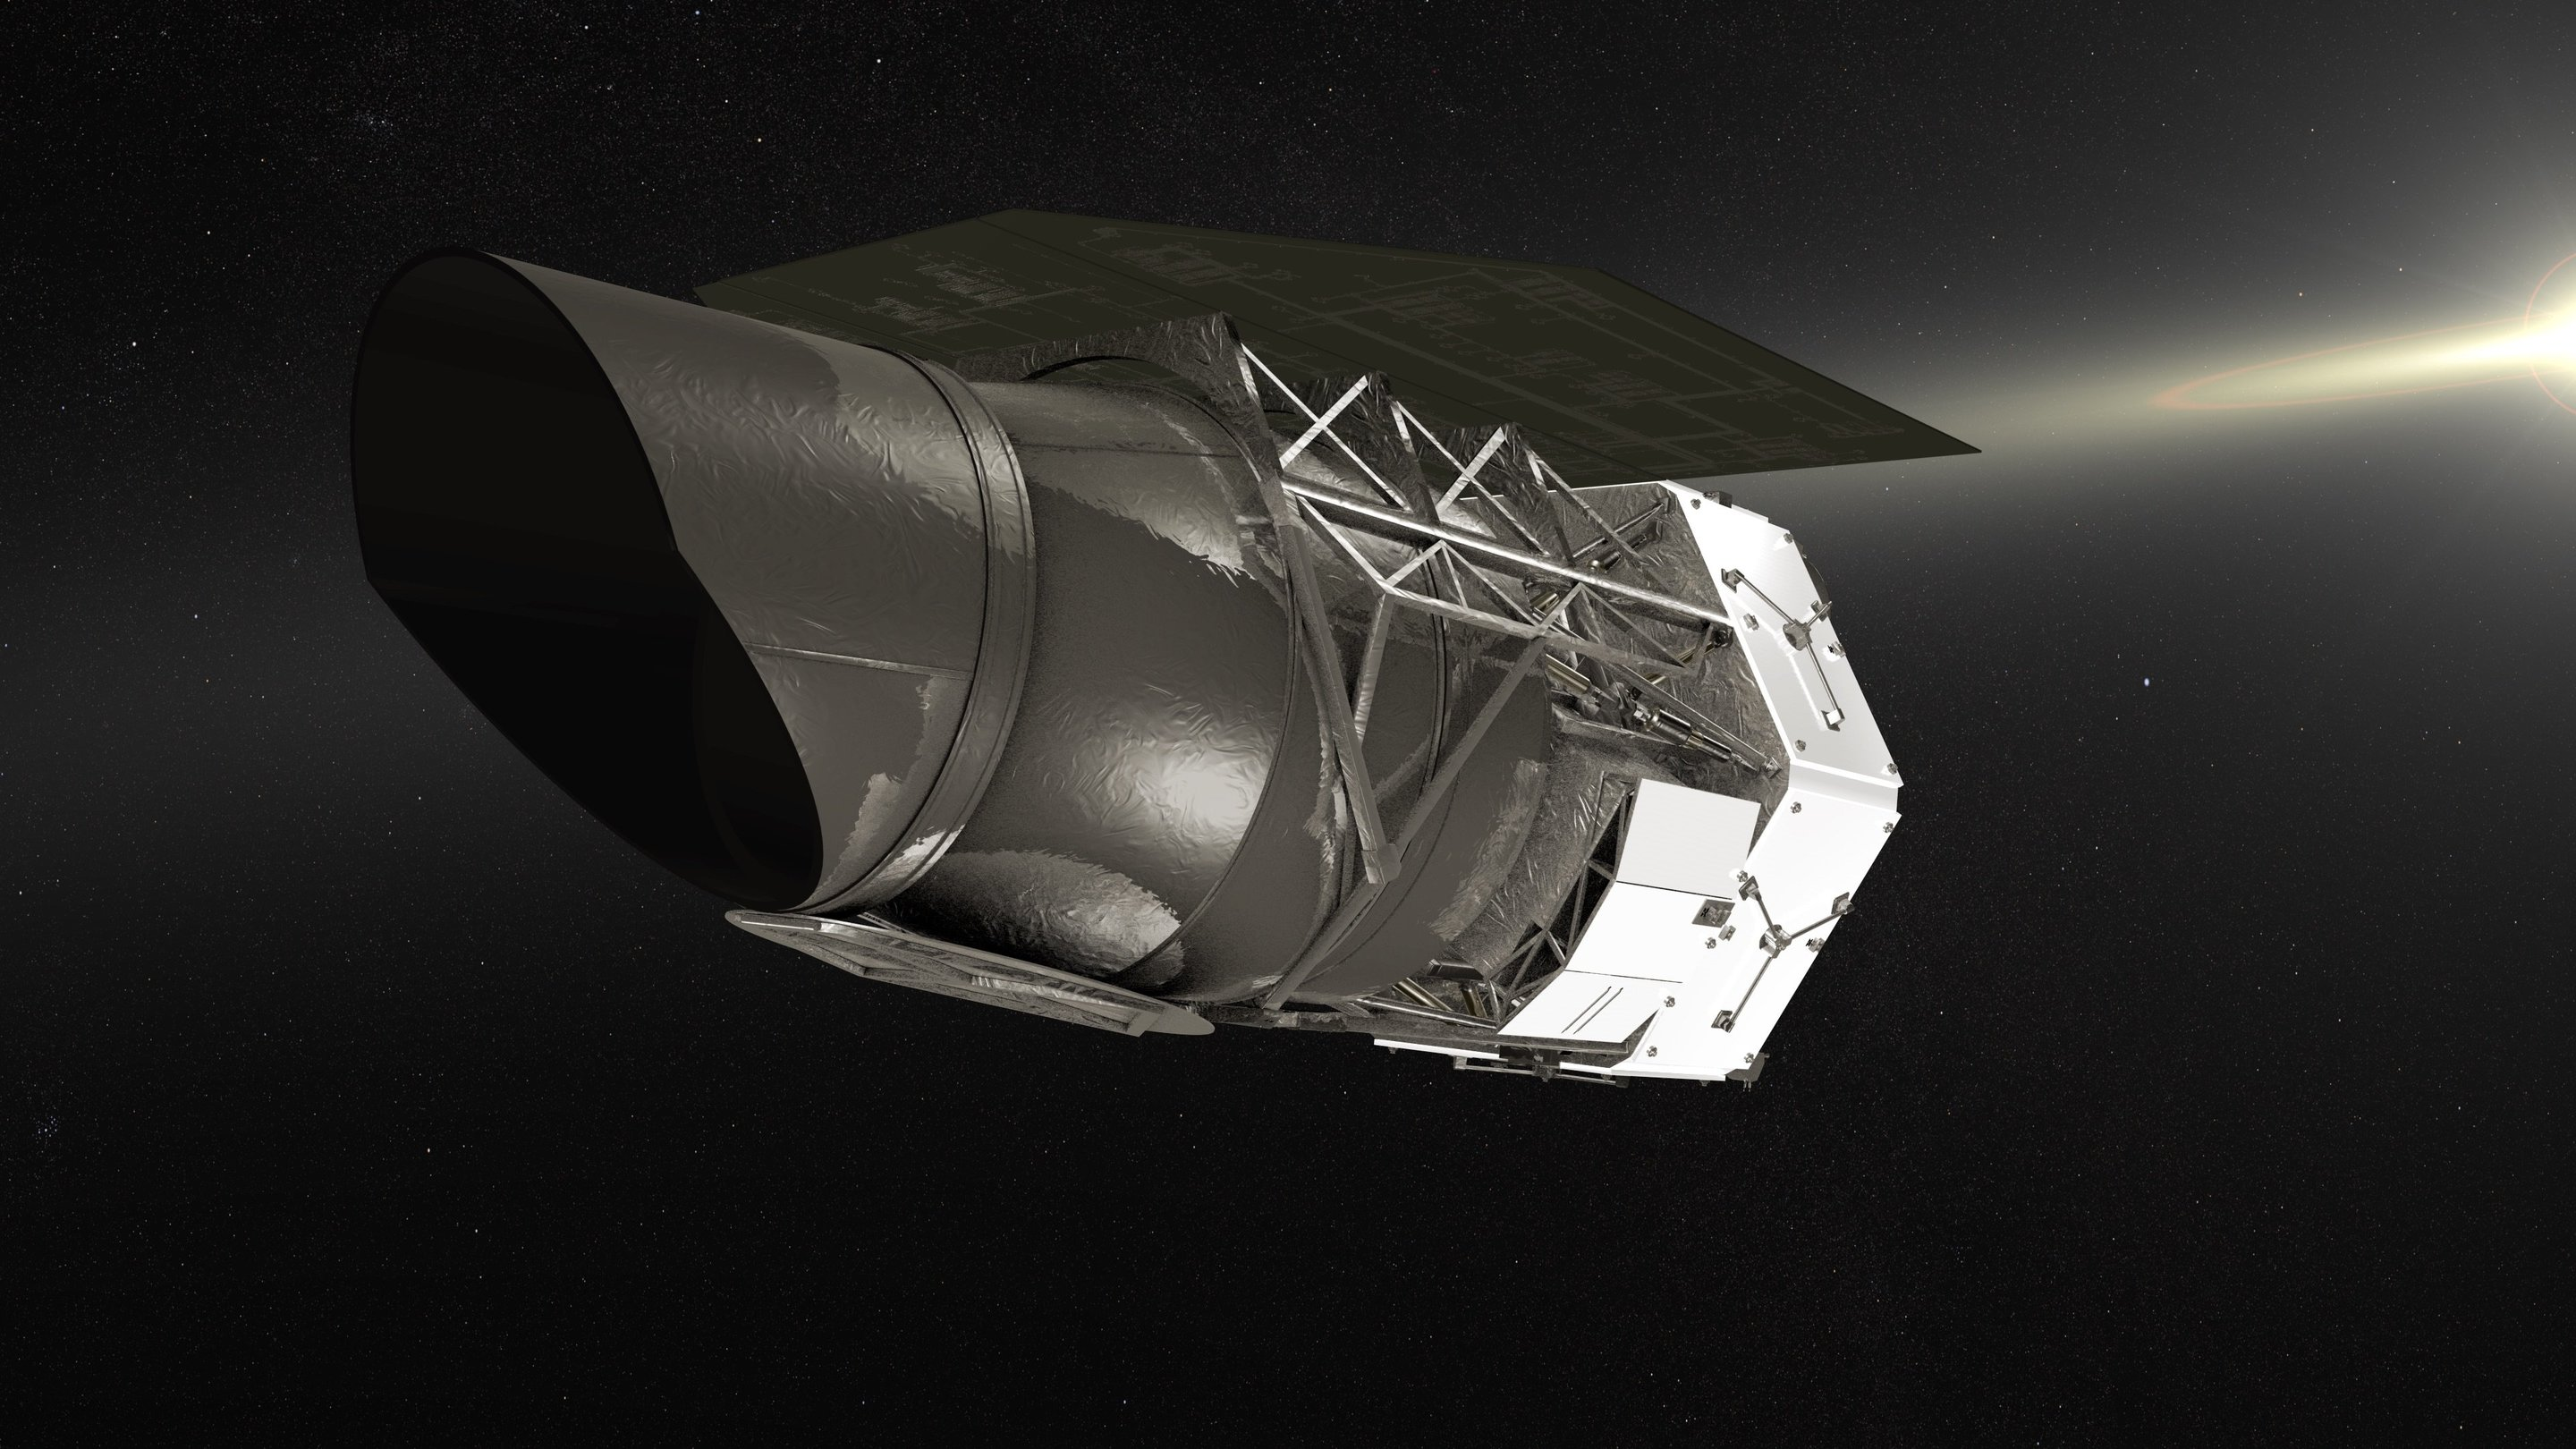 The WFIRST telescope will receive half of the funding requested 100